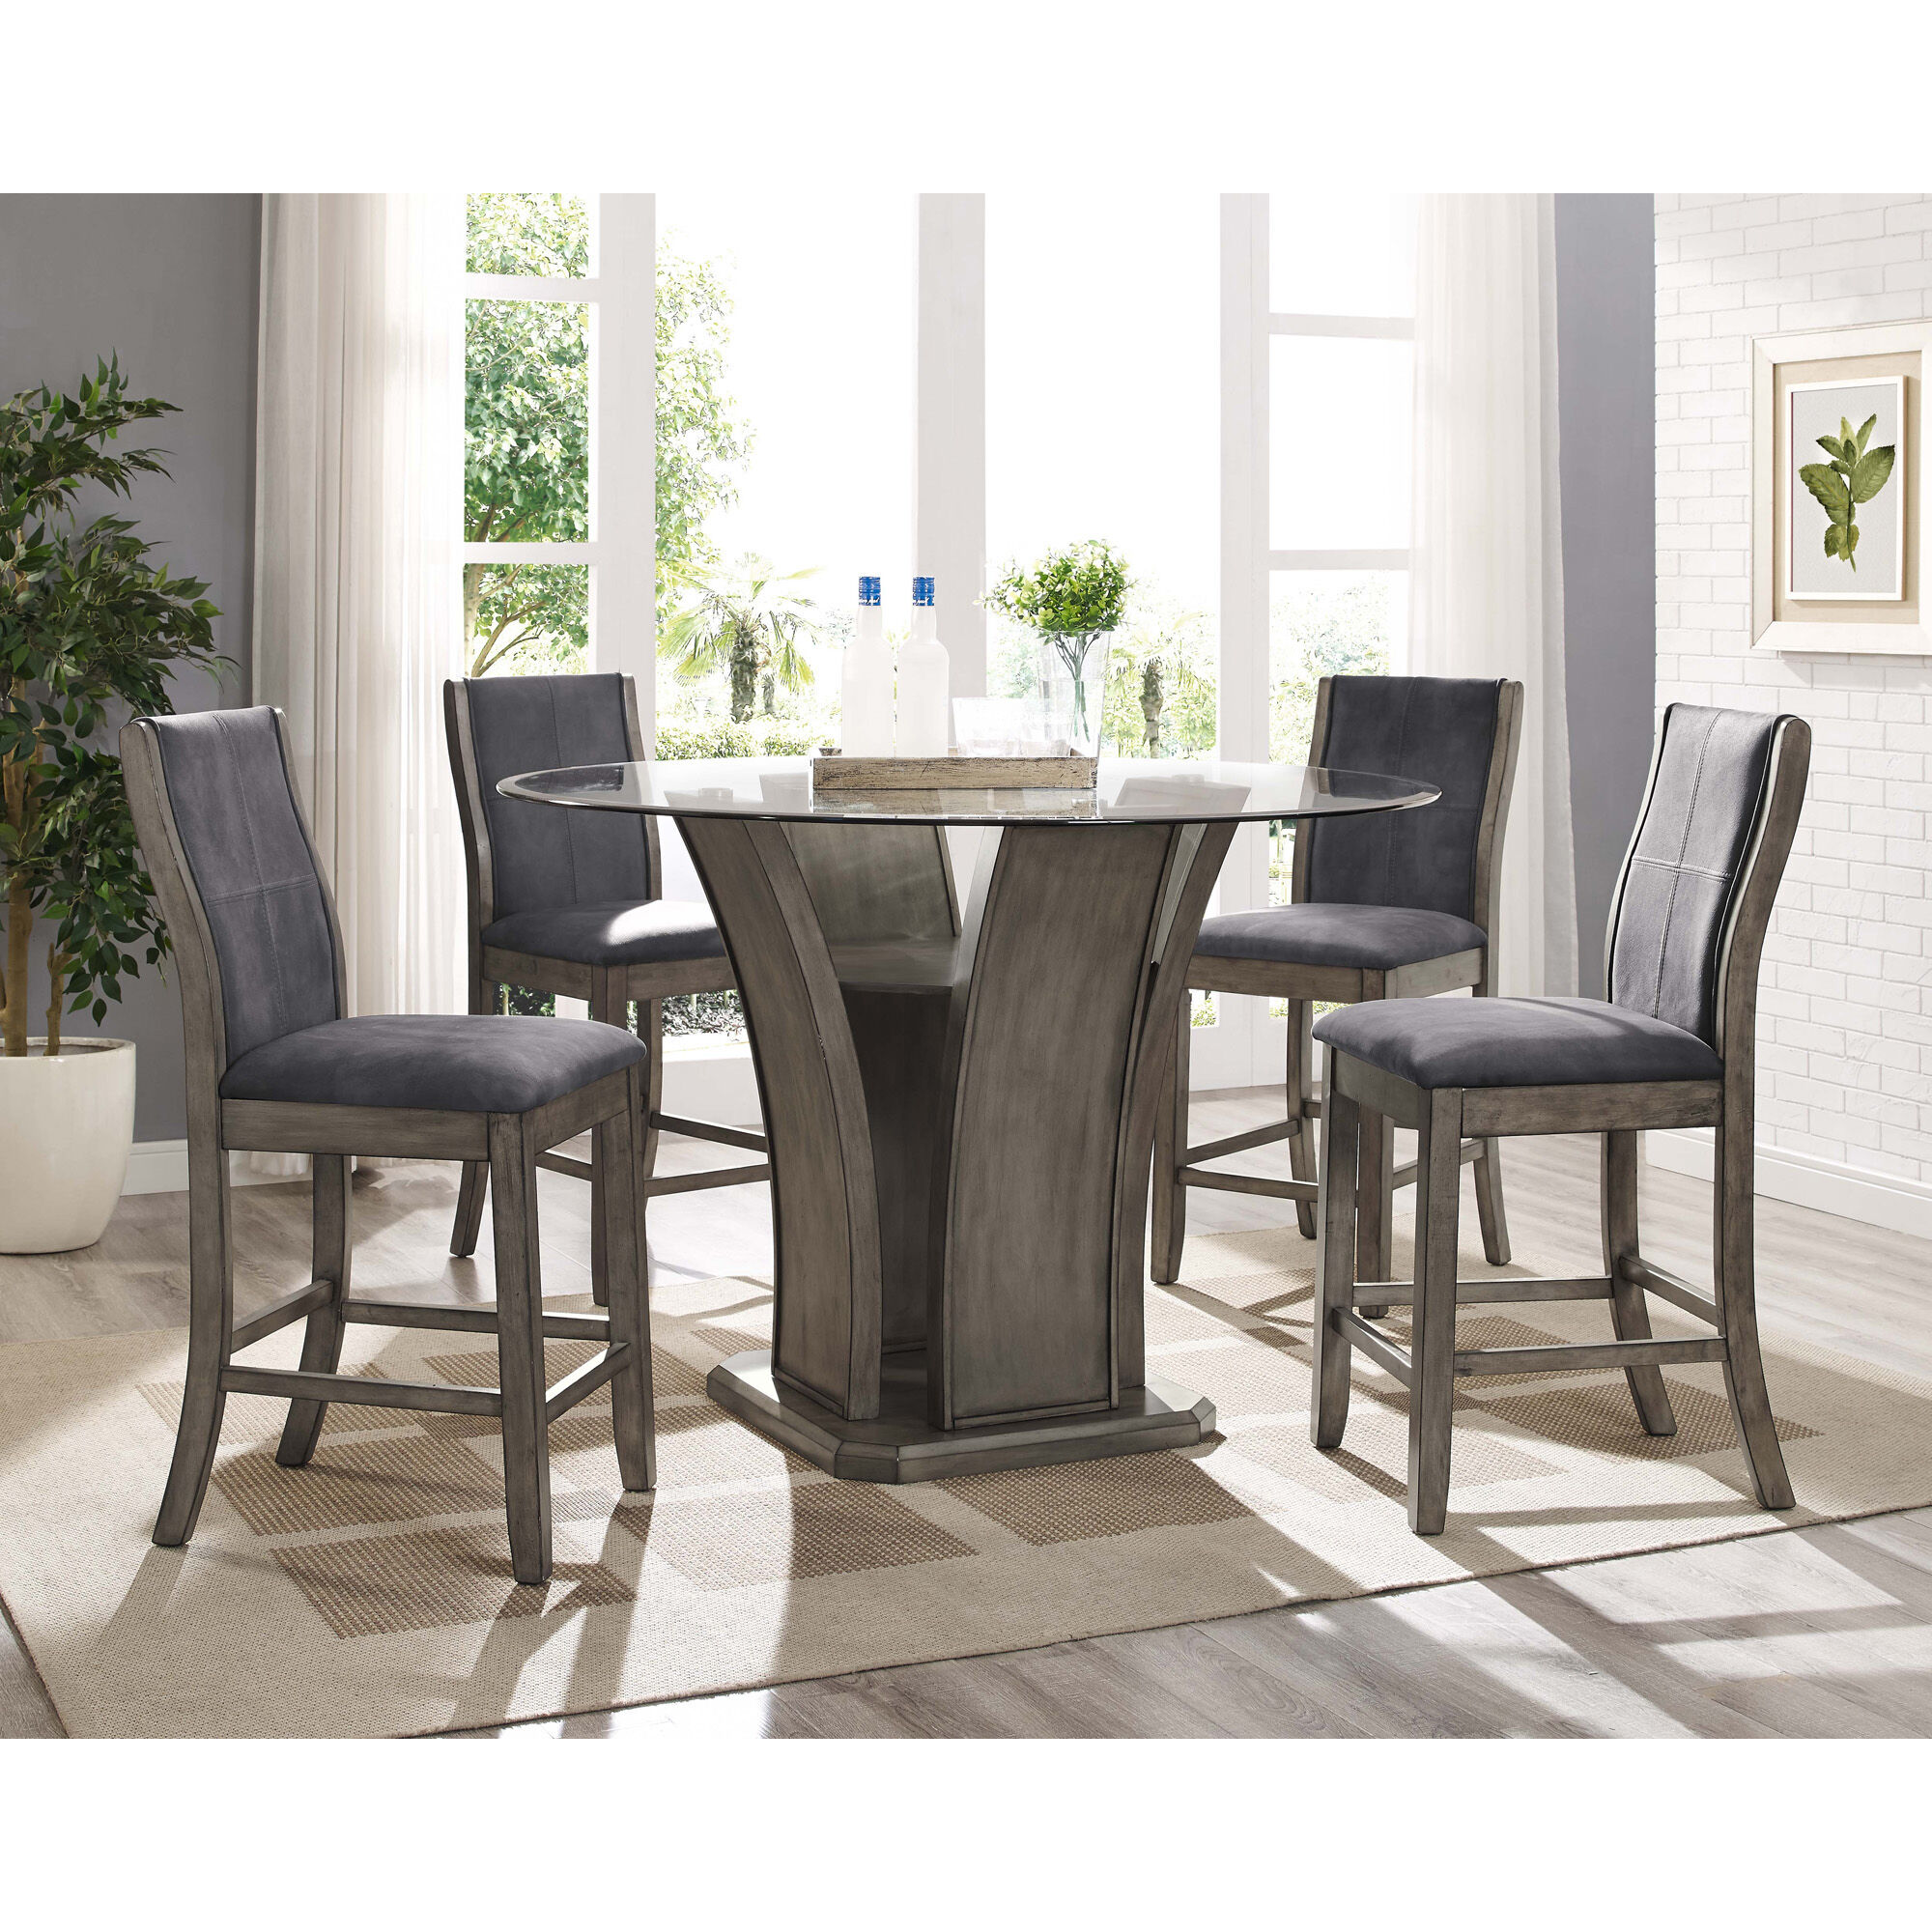 5 Piece Destin Dining Room Collection